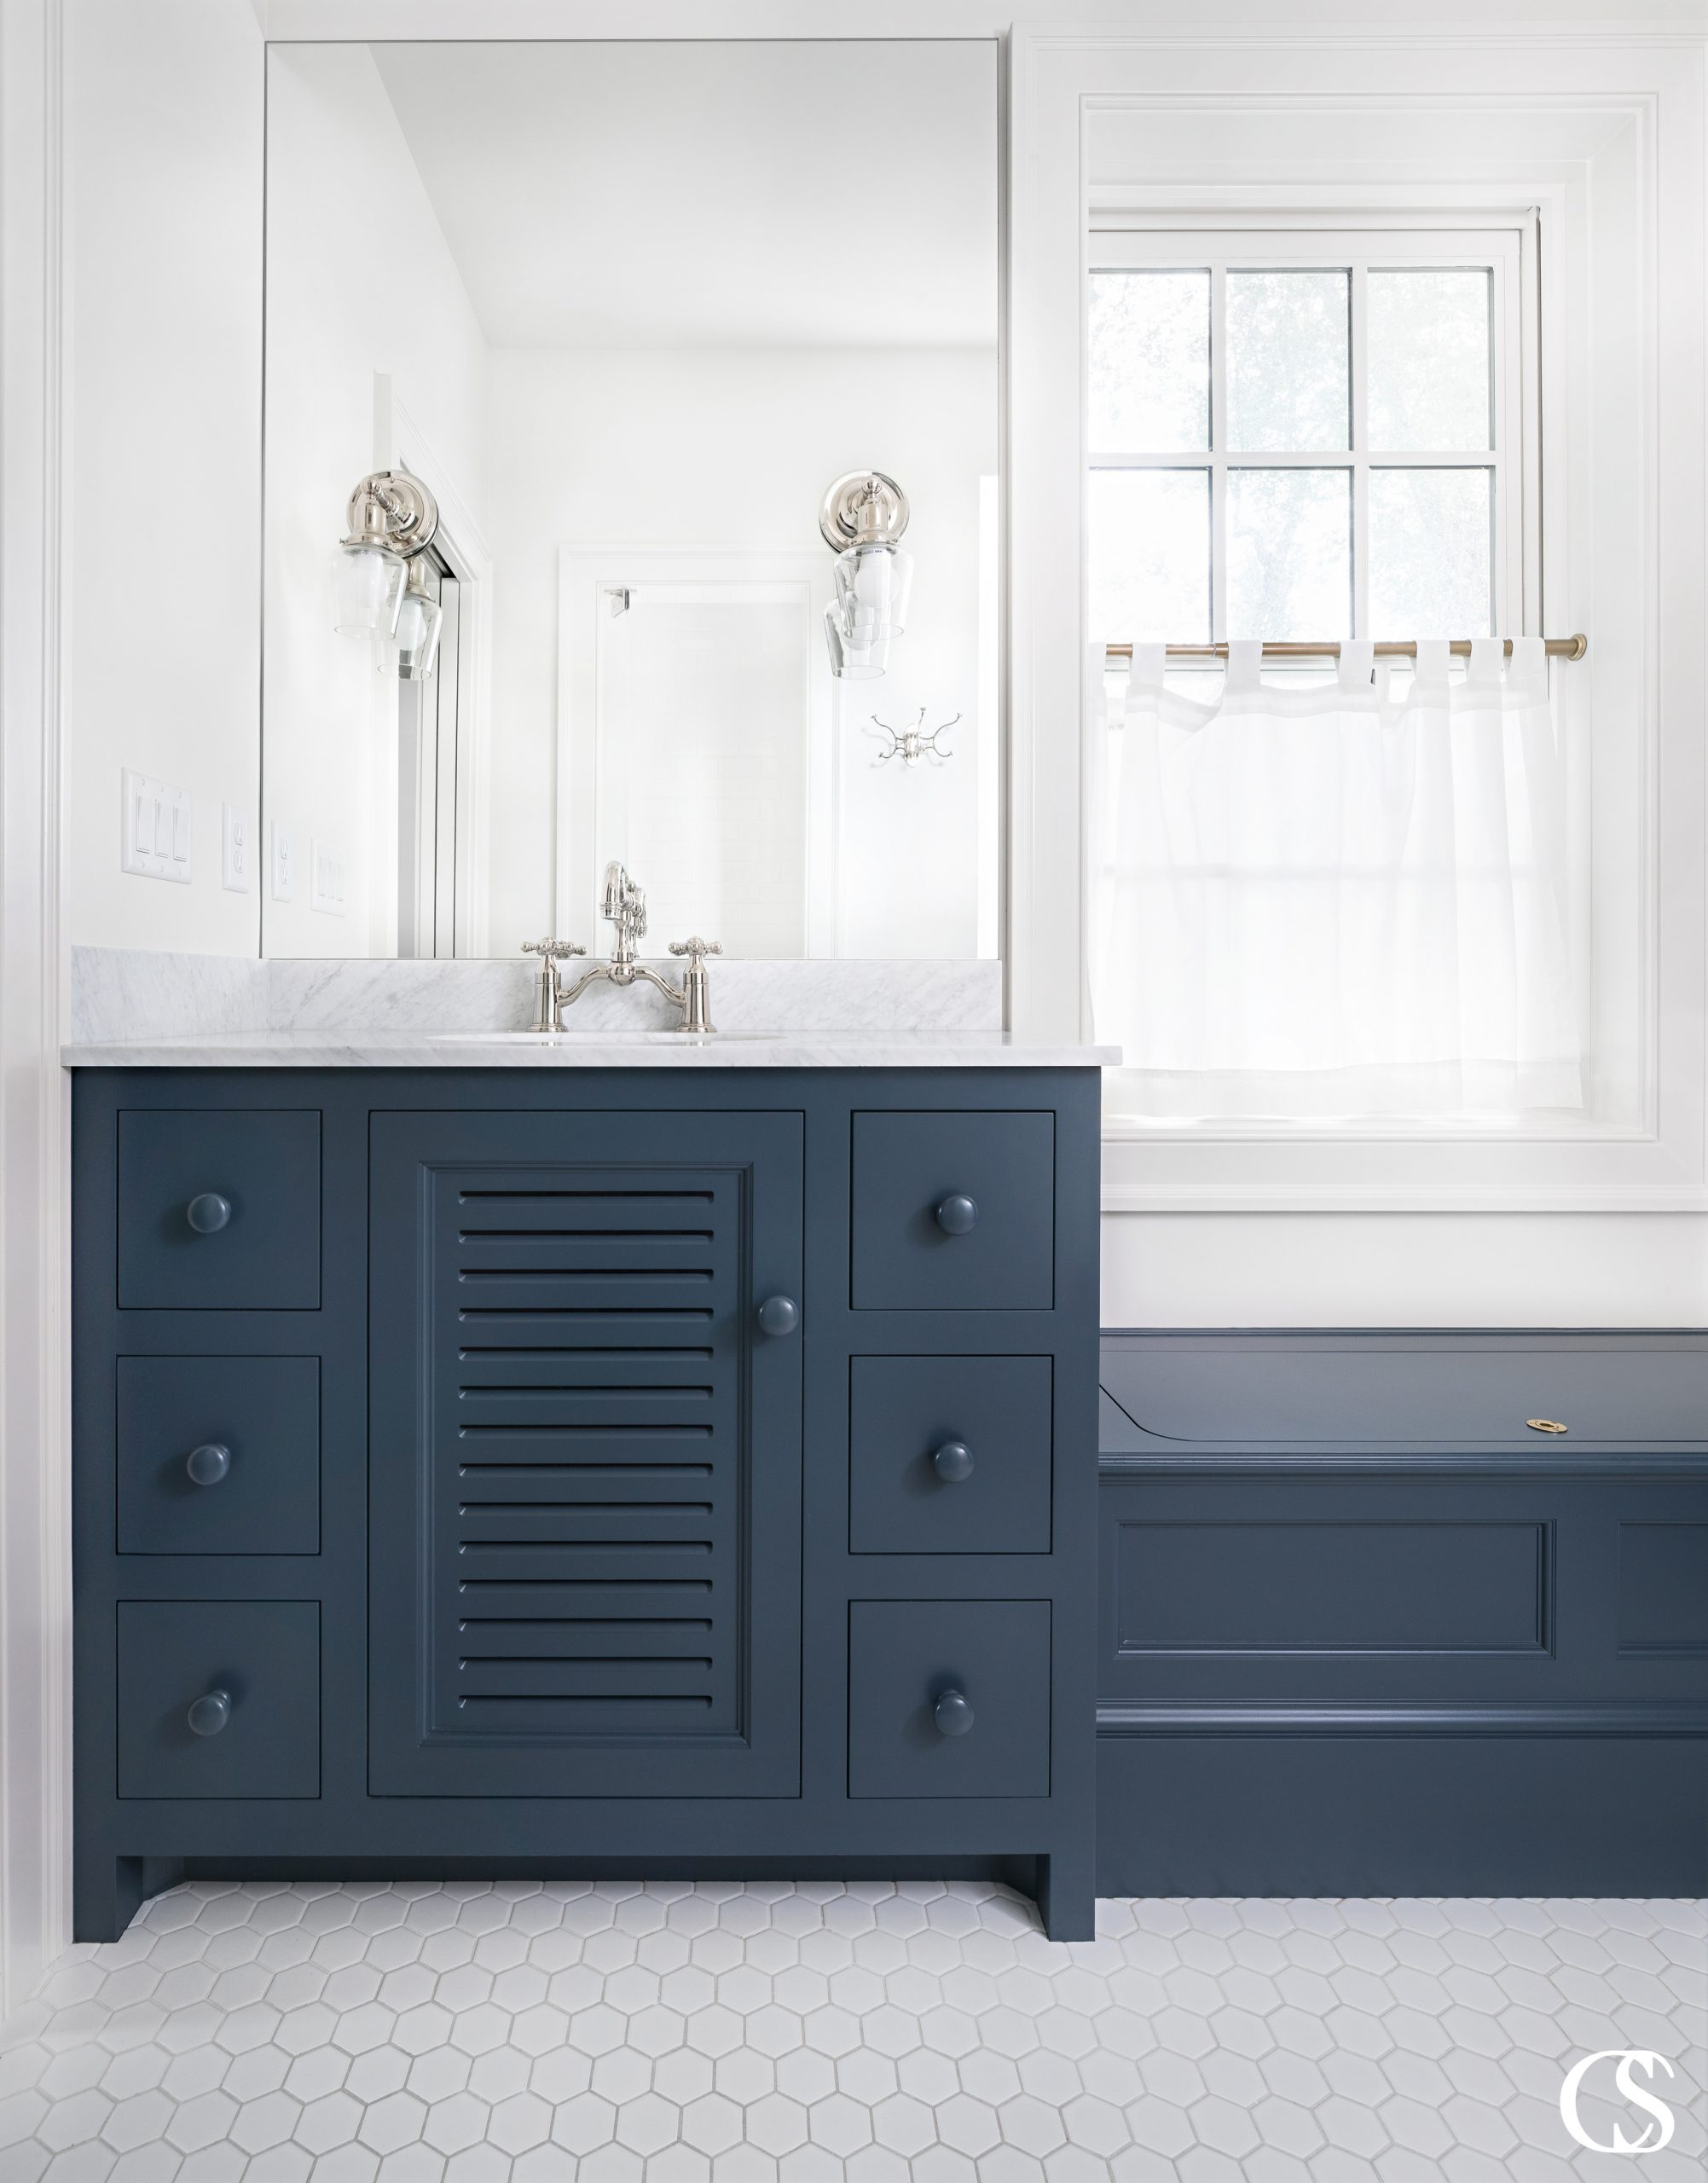 What could become a bulky bathroom cabinets design is completely changed by the slats in the center cupboard door. It's the little decisions like that which take custom cabinetry to the next level.